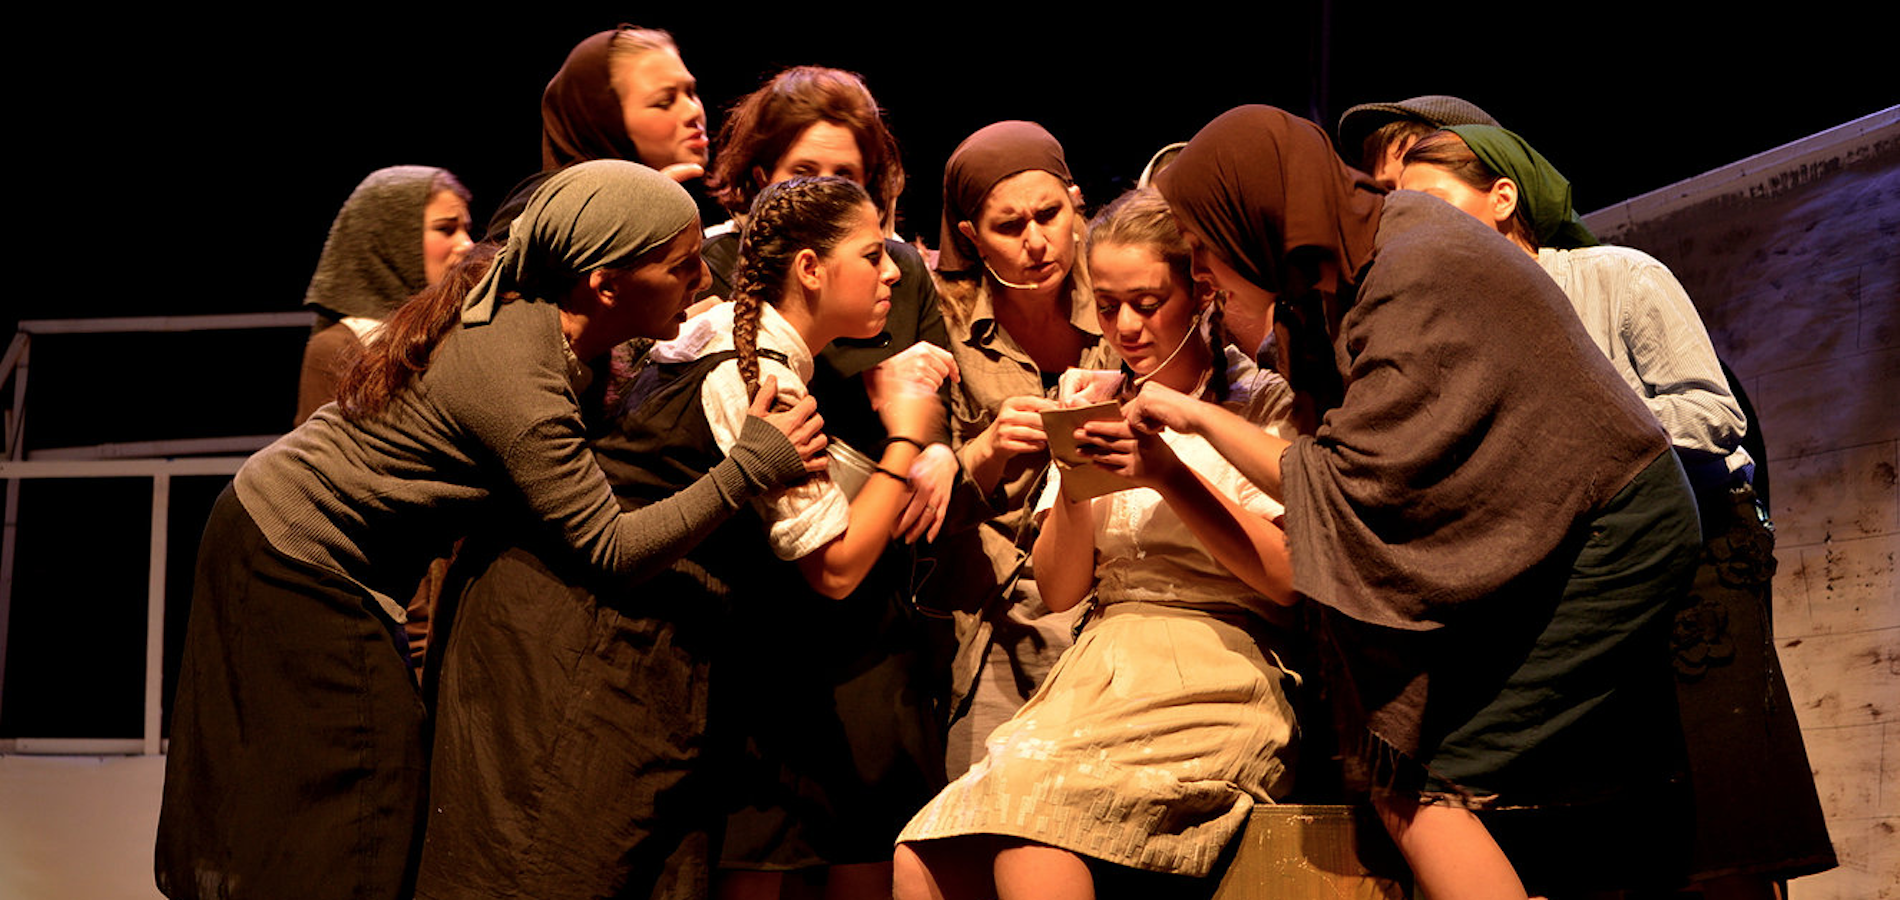 The Orthodox Jewish Female Theater Troupe Taking Israel By Storm